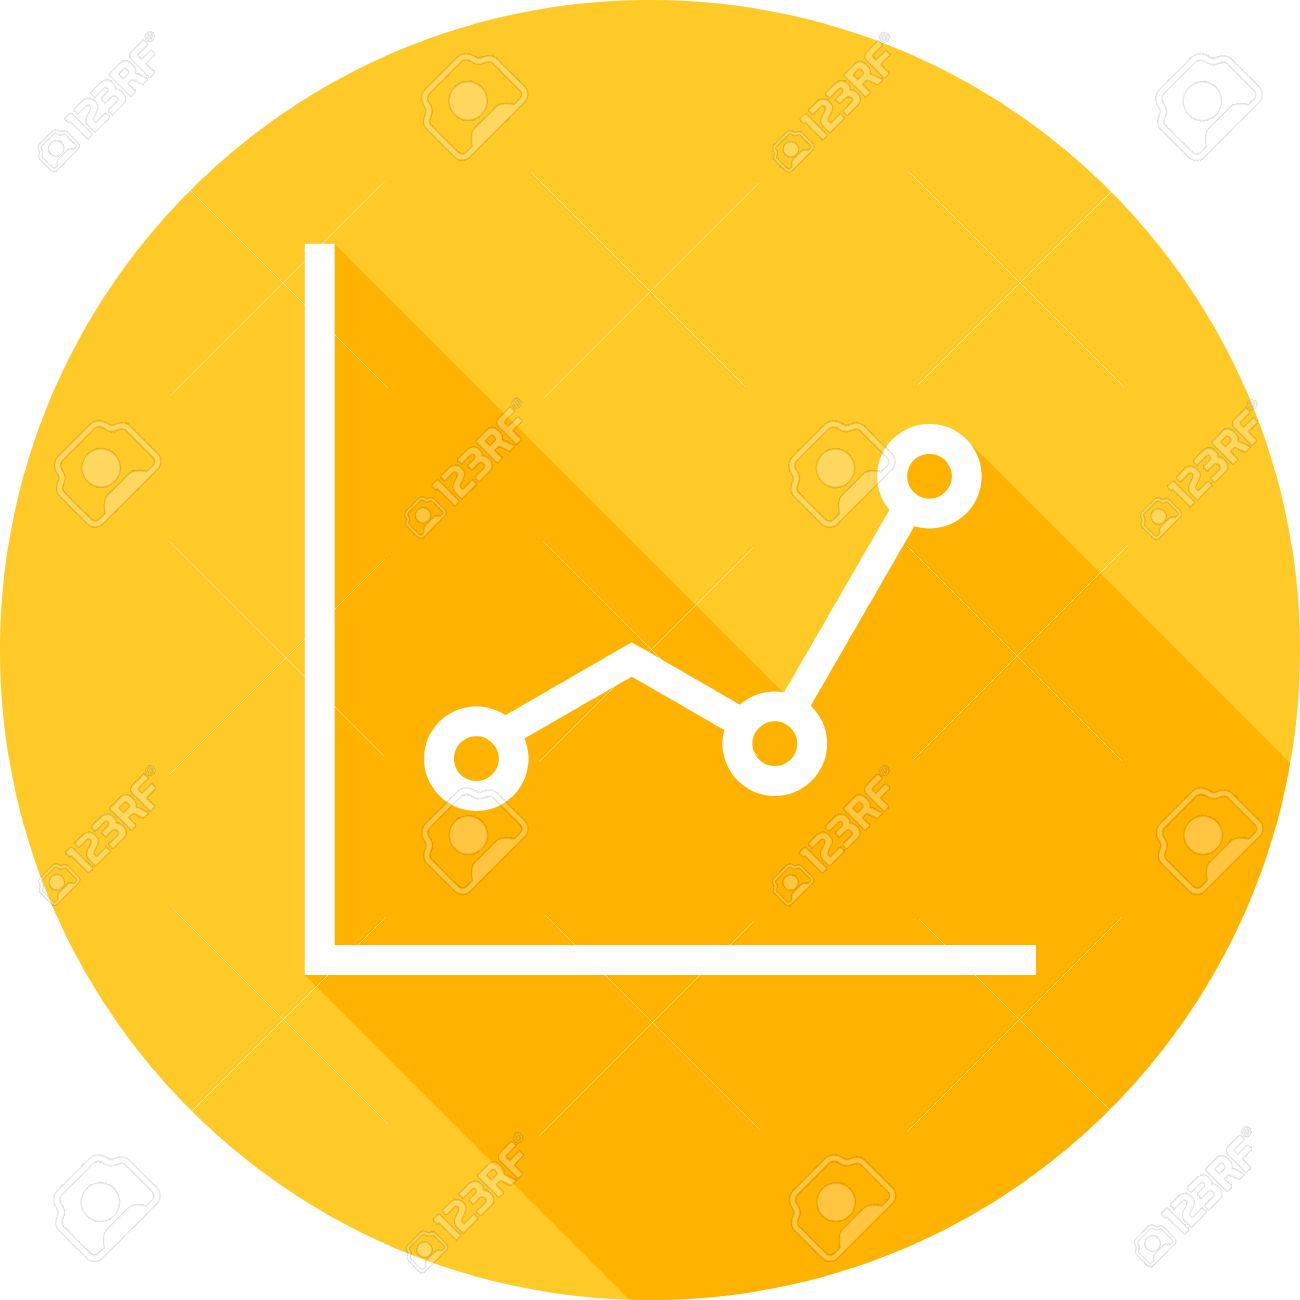 line, graph, chart, statistics icon image. royalty free cliparts